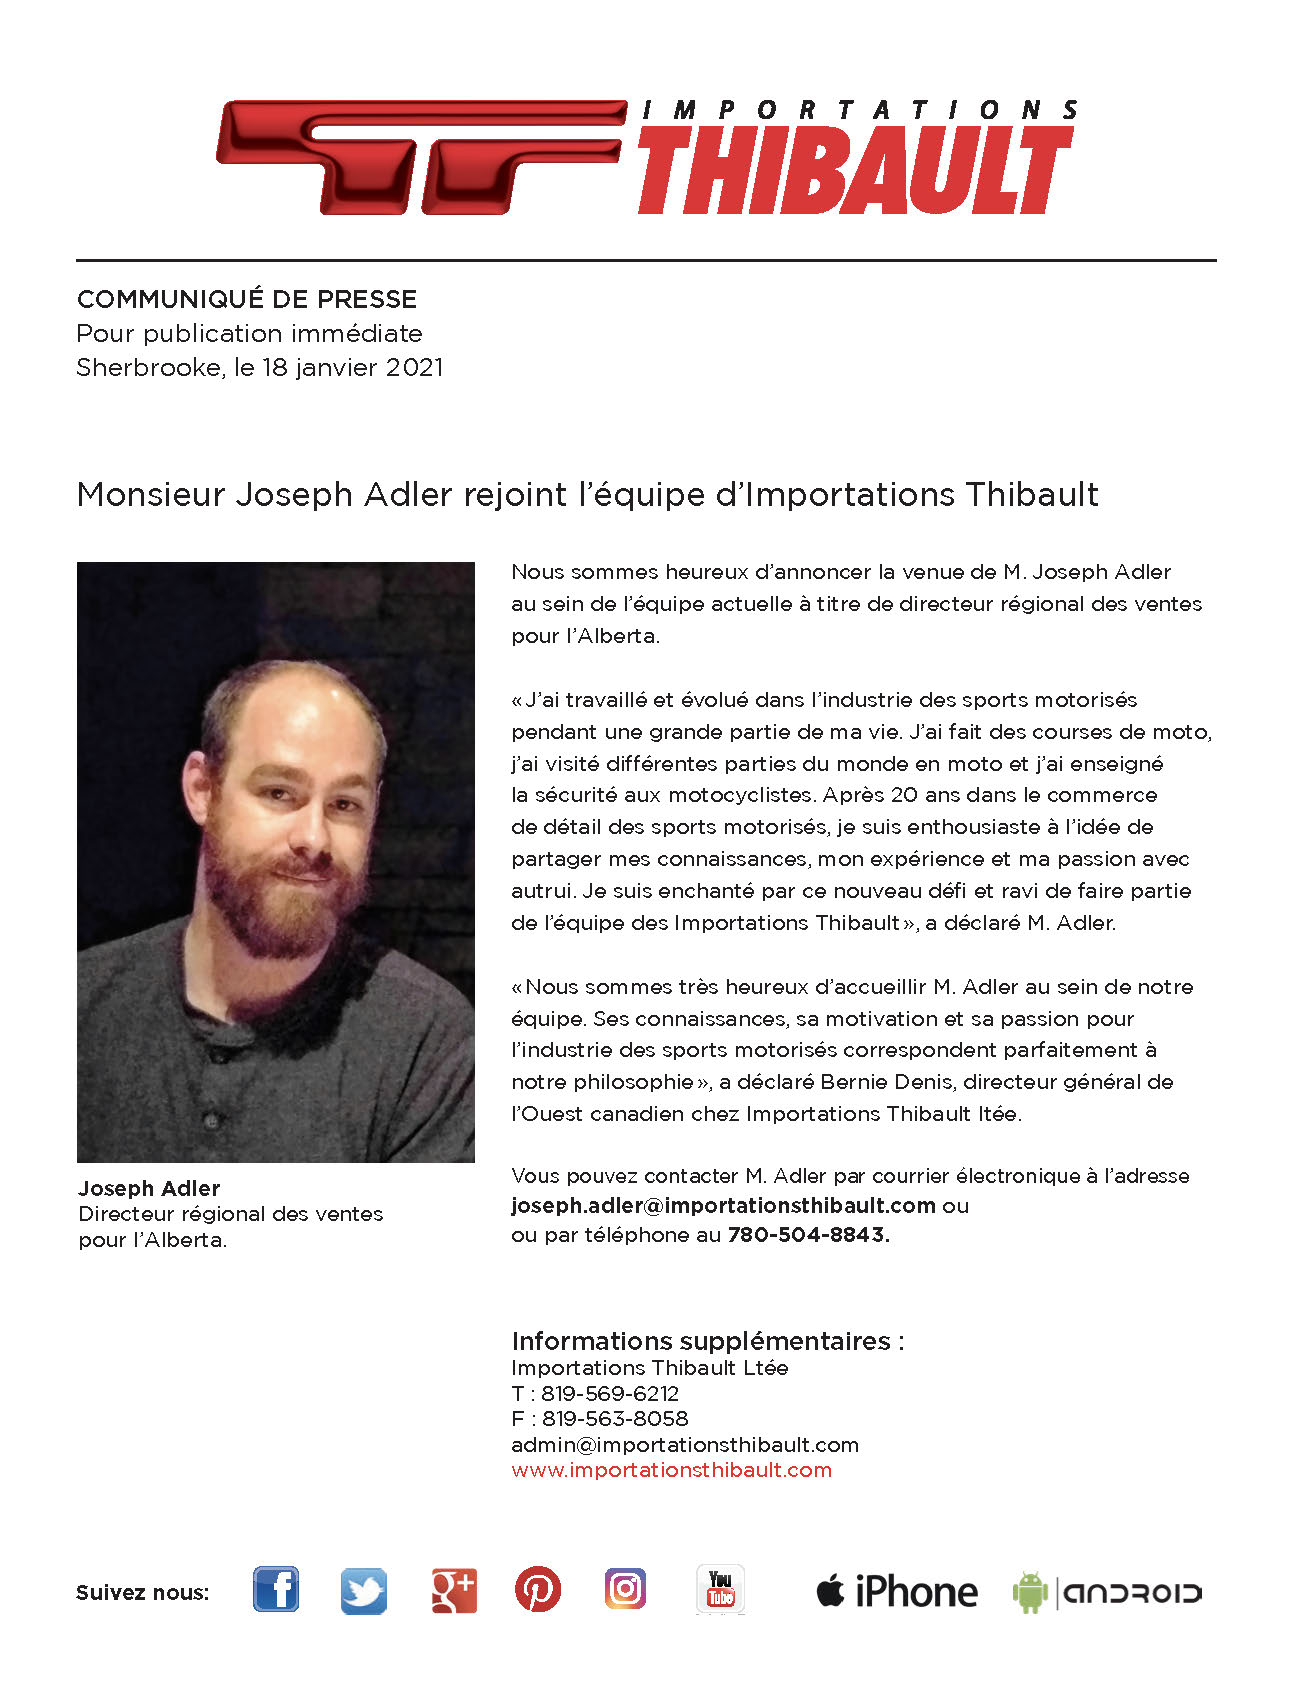 Mr Joseph Adler joins the Importations Thibault team.